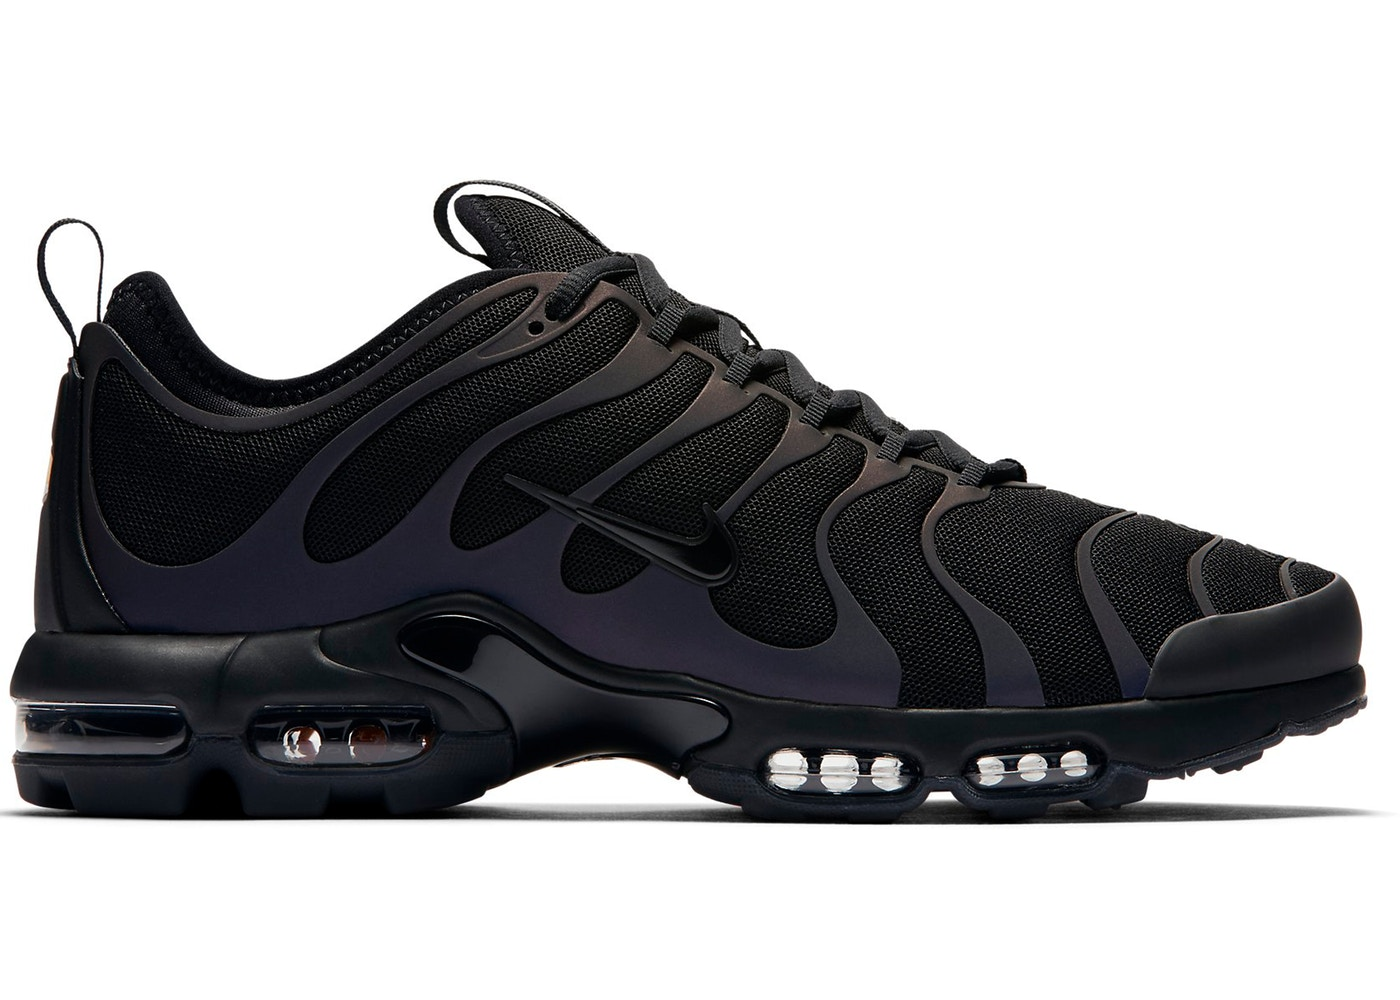 612a985e5 Sell. or Ask. Size: 6.5. View All Bids. Air Max Plus TN Ultra Triple Black